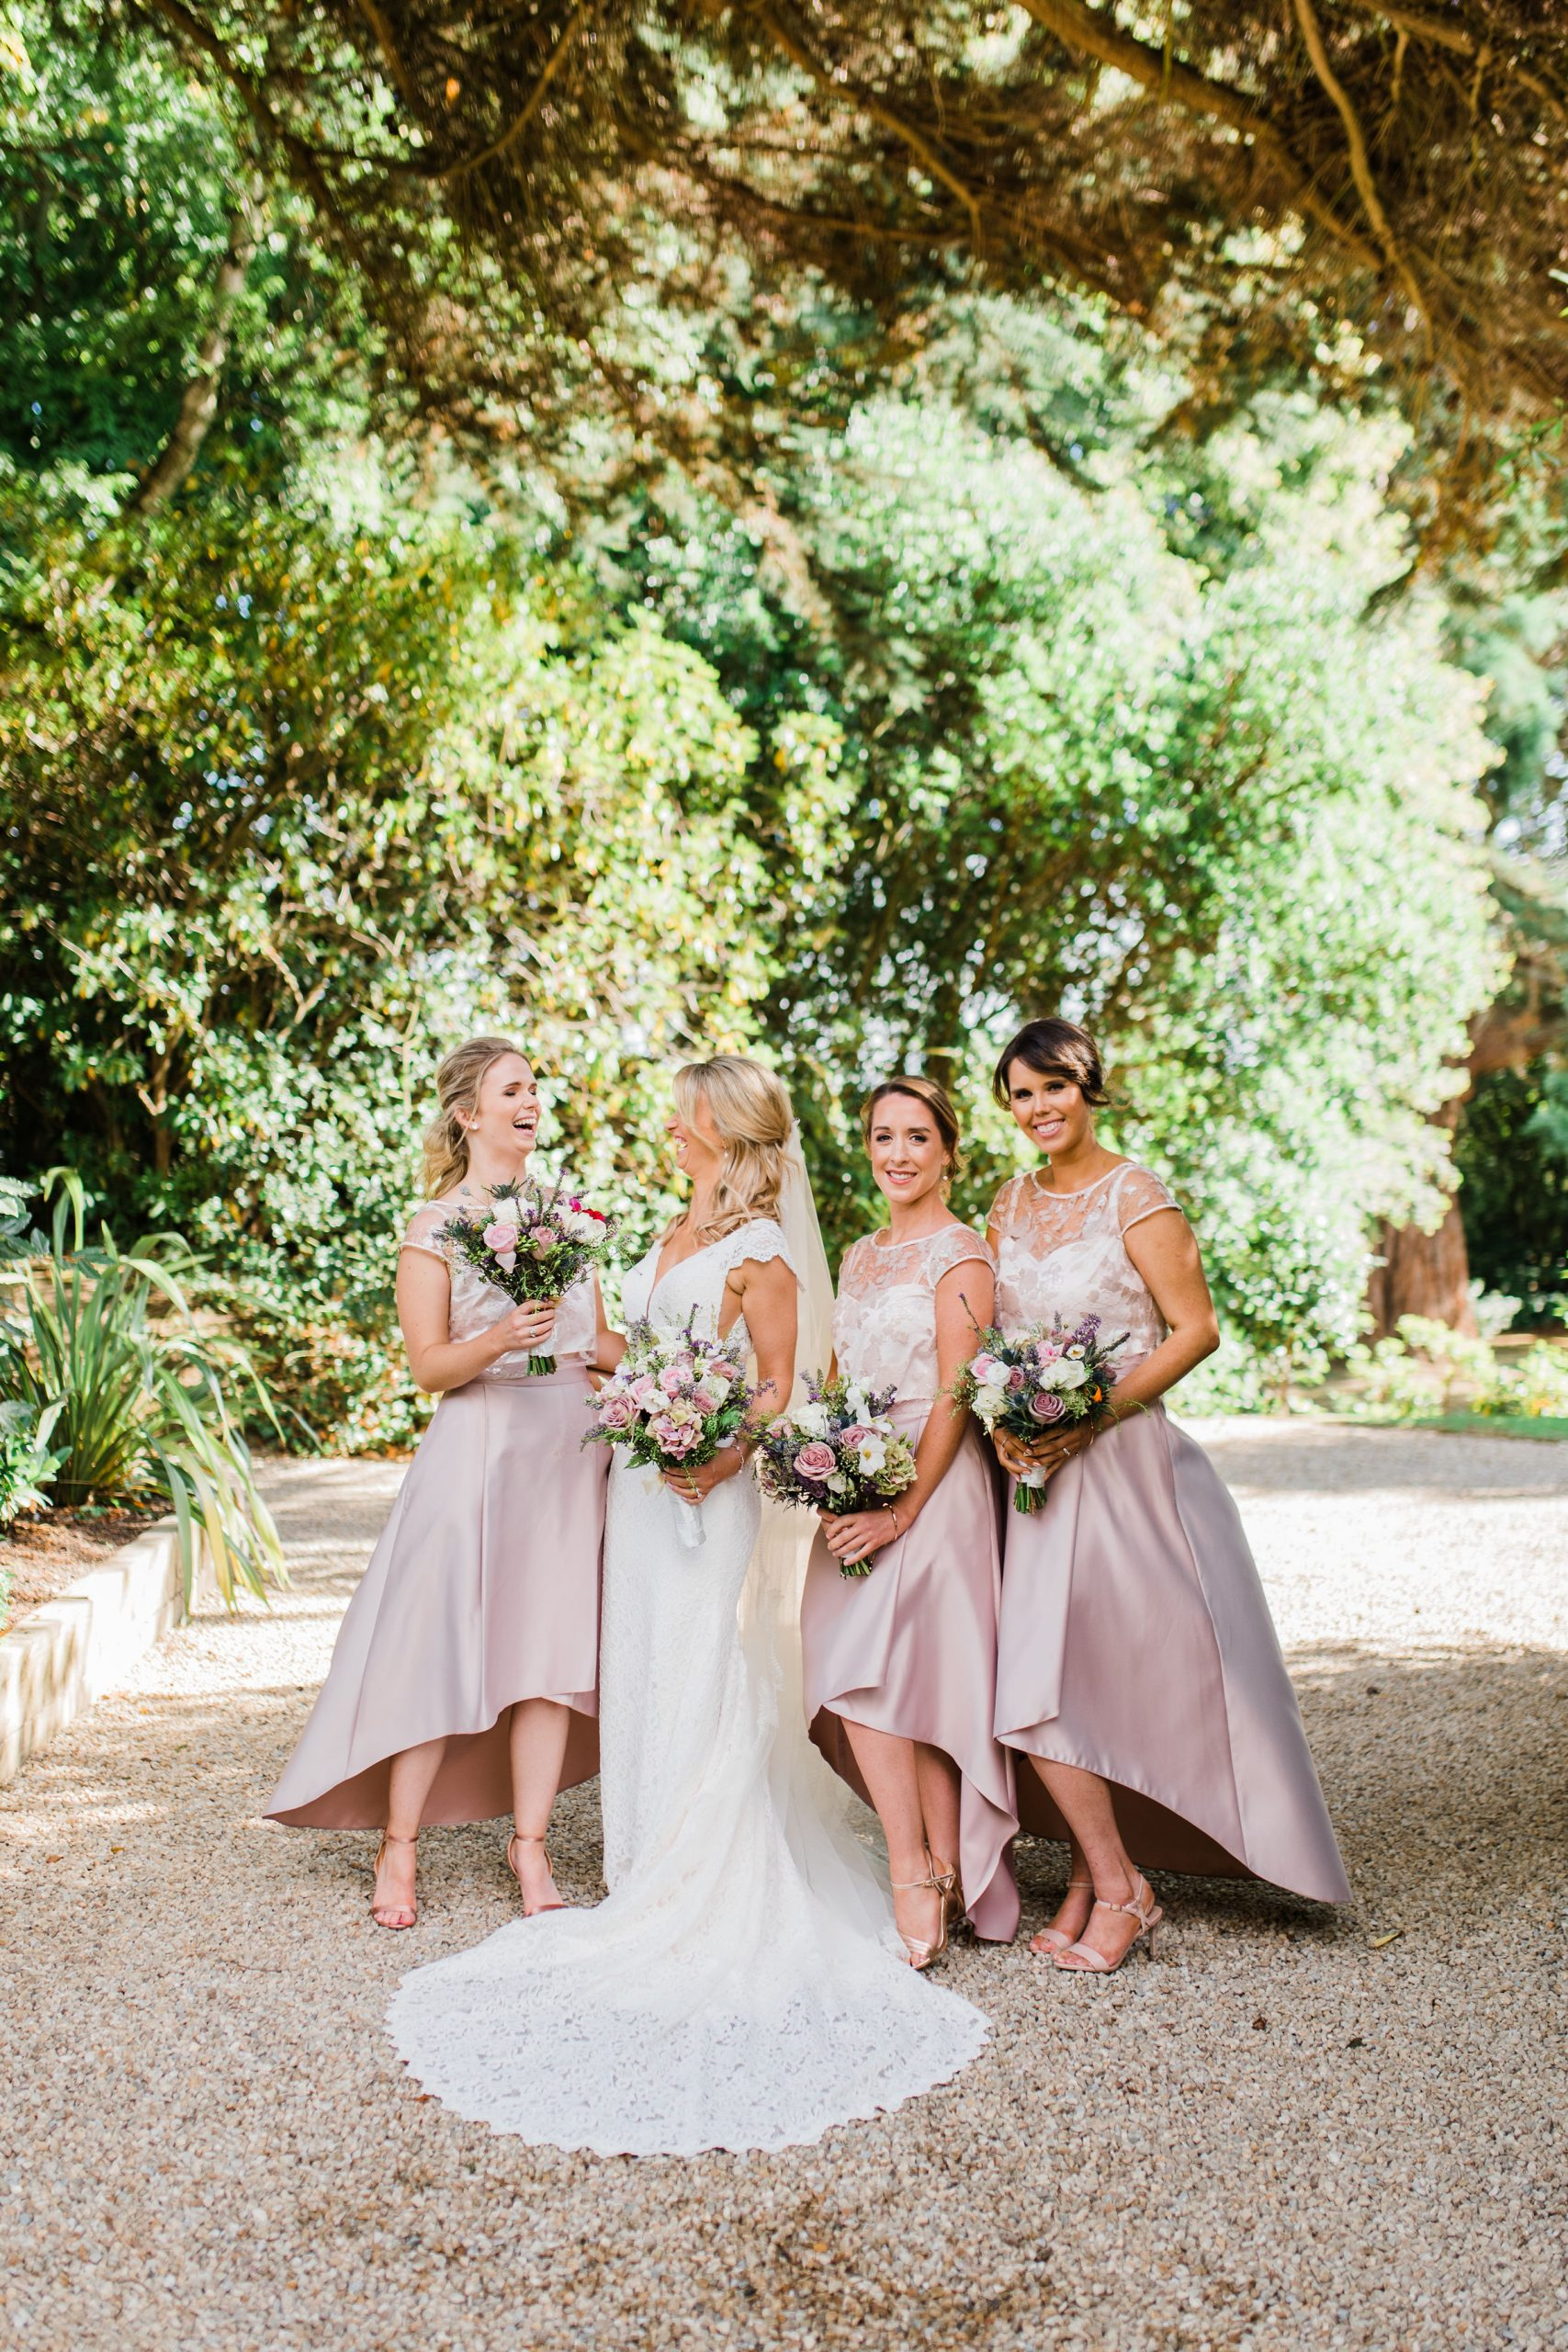 Bridesmaids laughing together on sunny day